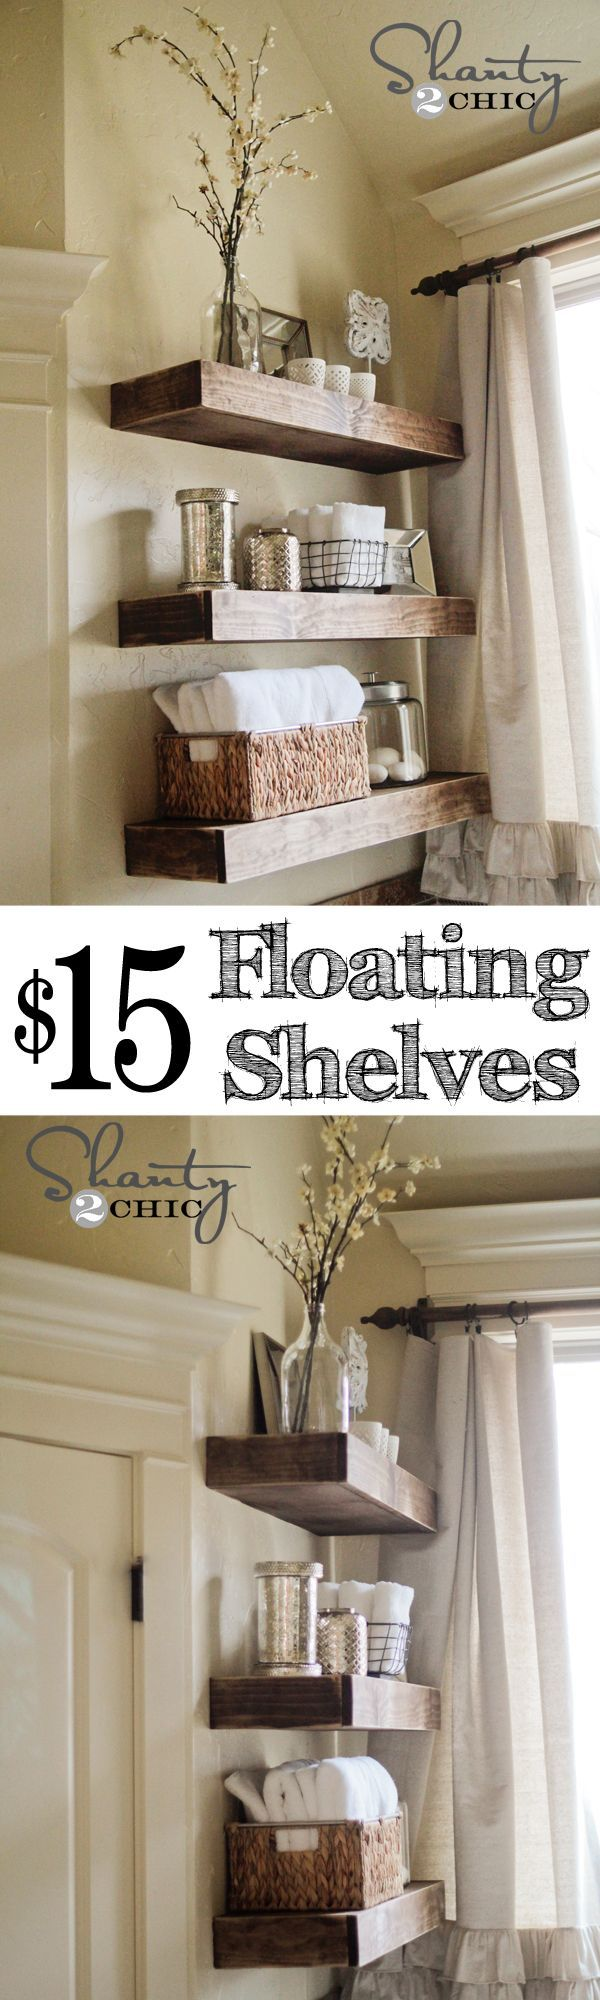 Diy bathroom decor pinterest - 12 Budget Friendly Diy Remodeling Projects For Your Bathroom